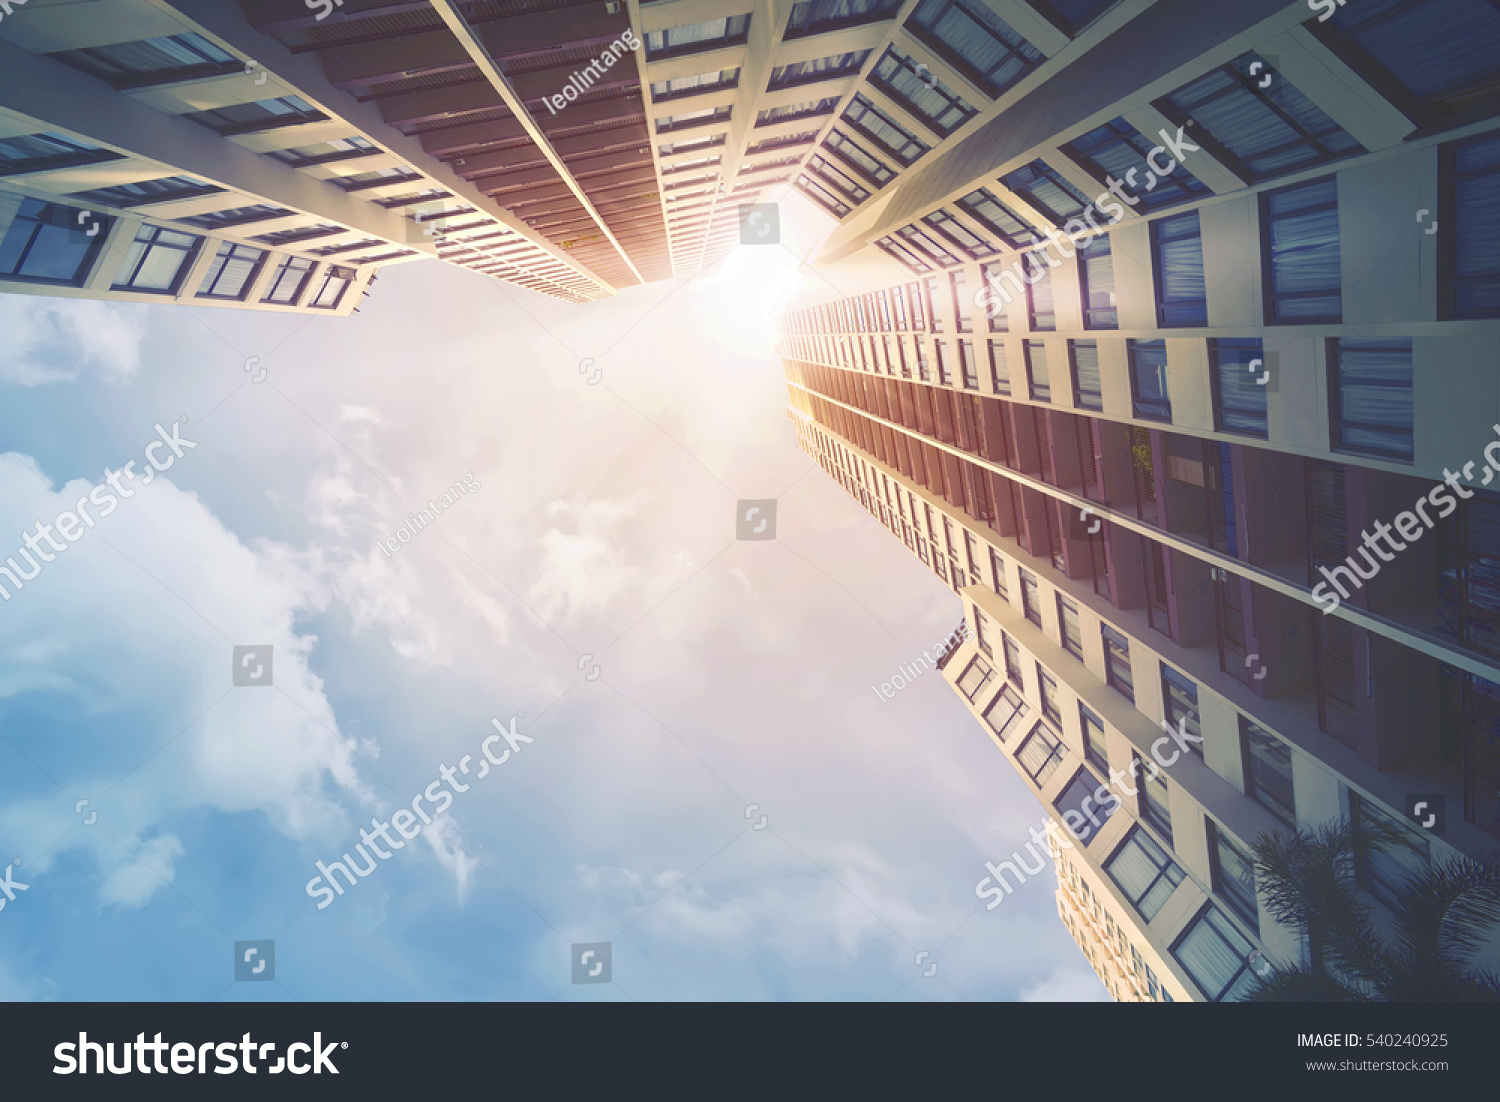 Futuristic architecture cityscape view with modern building skyscrapers #540240925